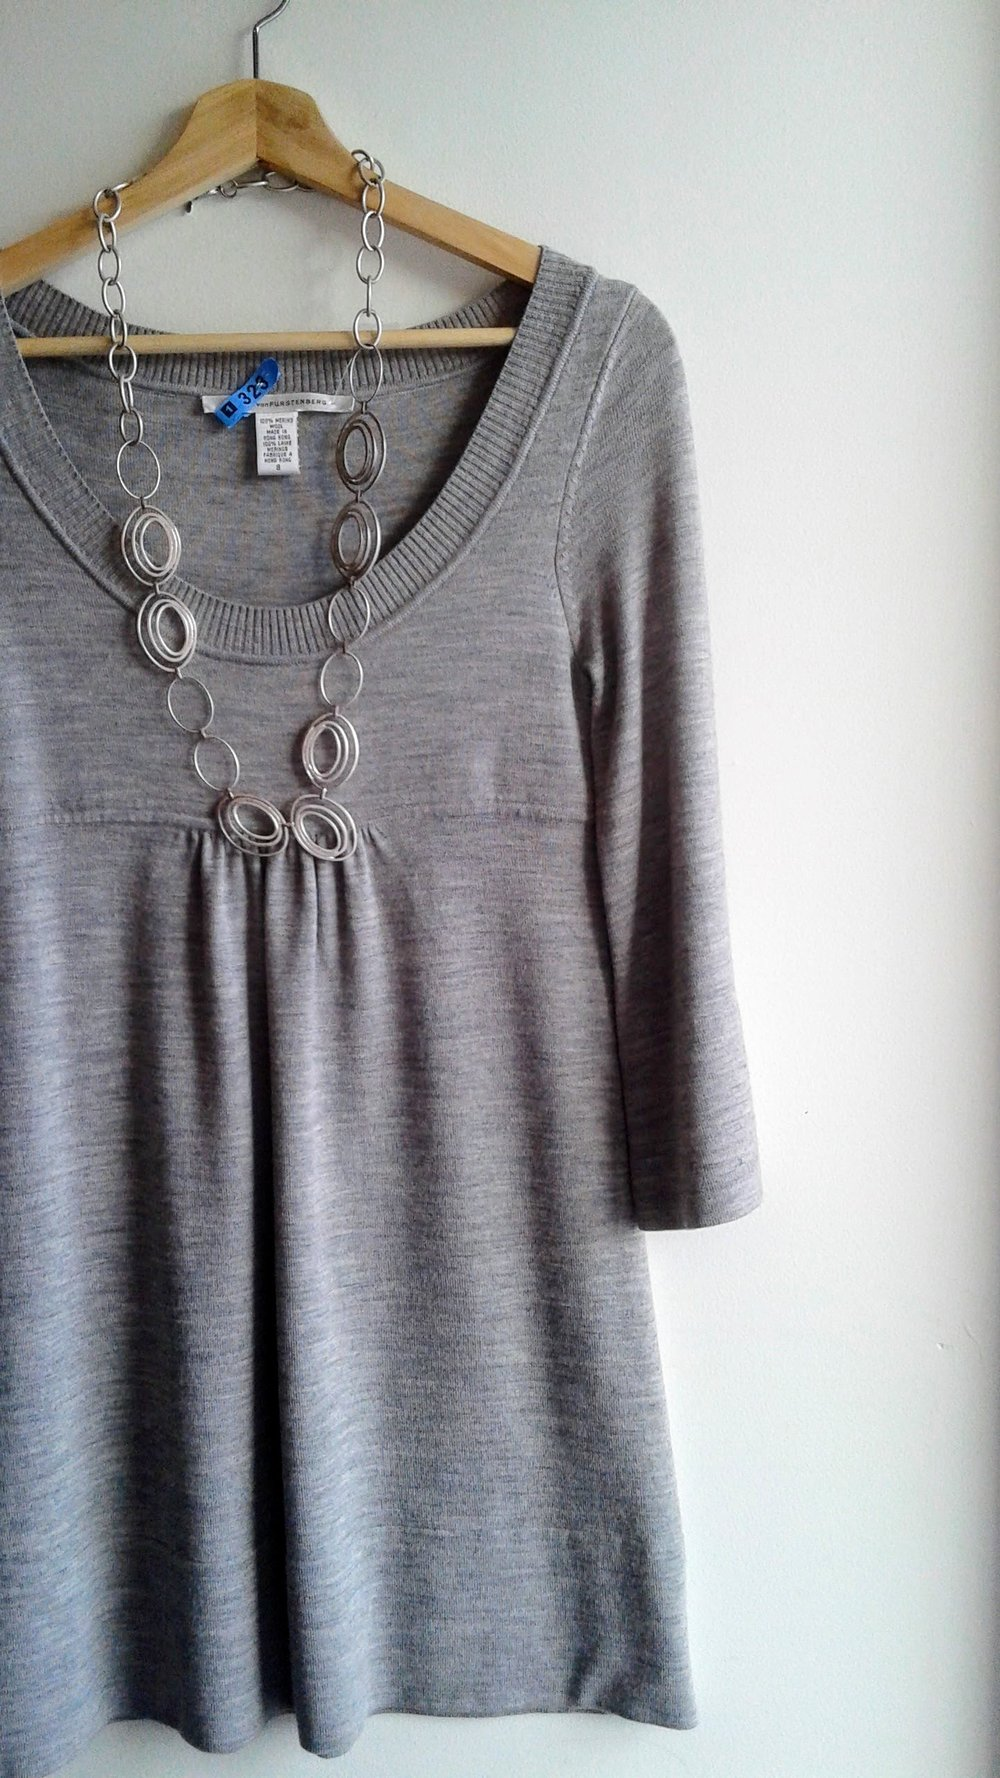 Diane von Fürstenberg dress; Size S, $58. Necklace, $26